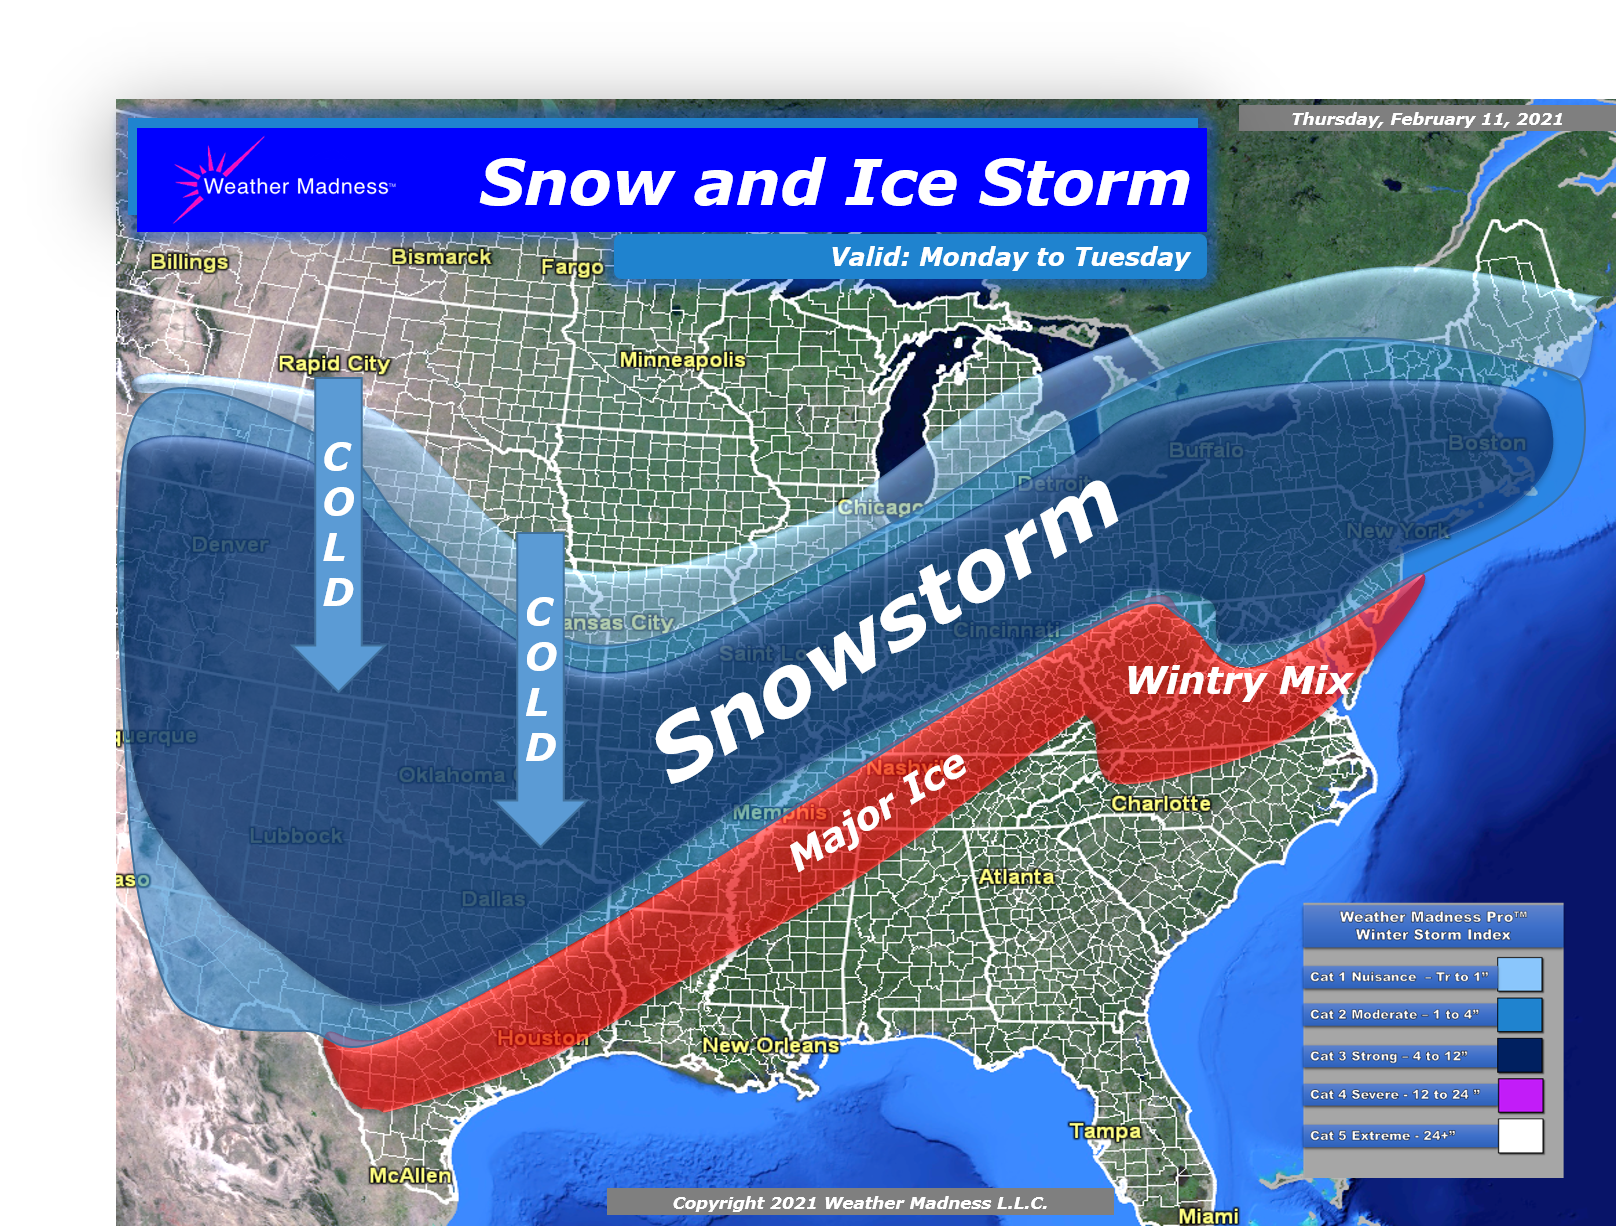 Video: Snow, Cold, Ice Impacts, Major Problems